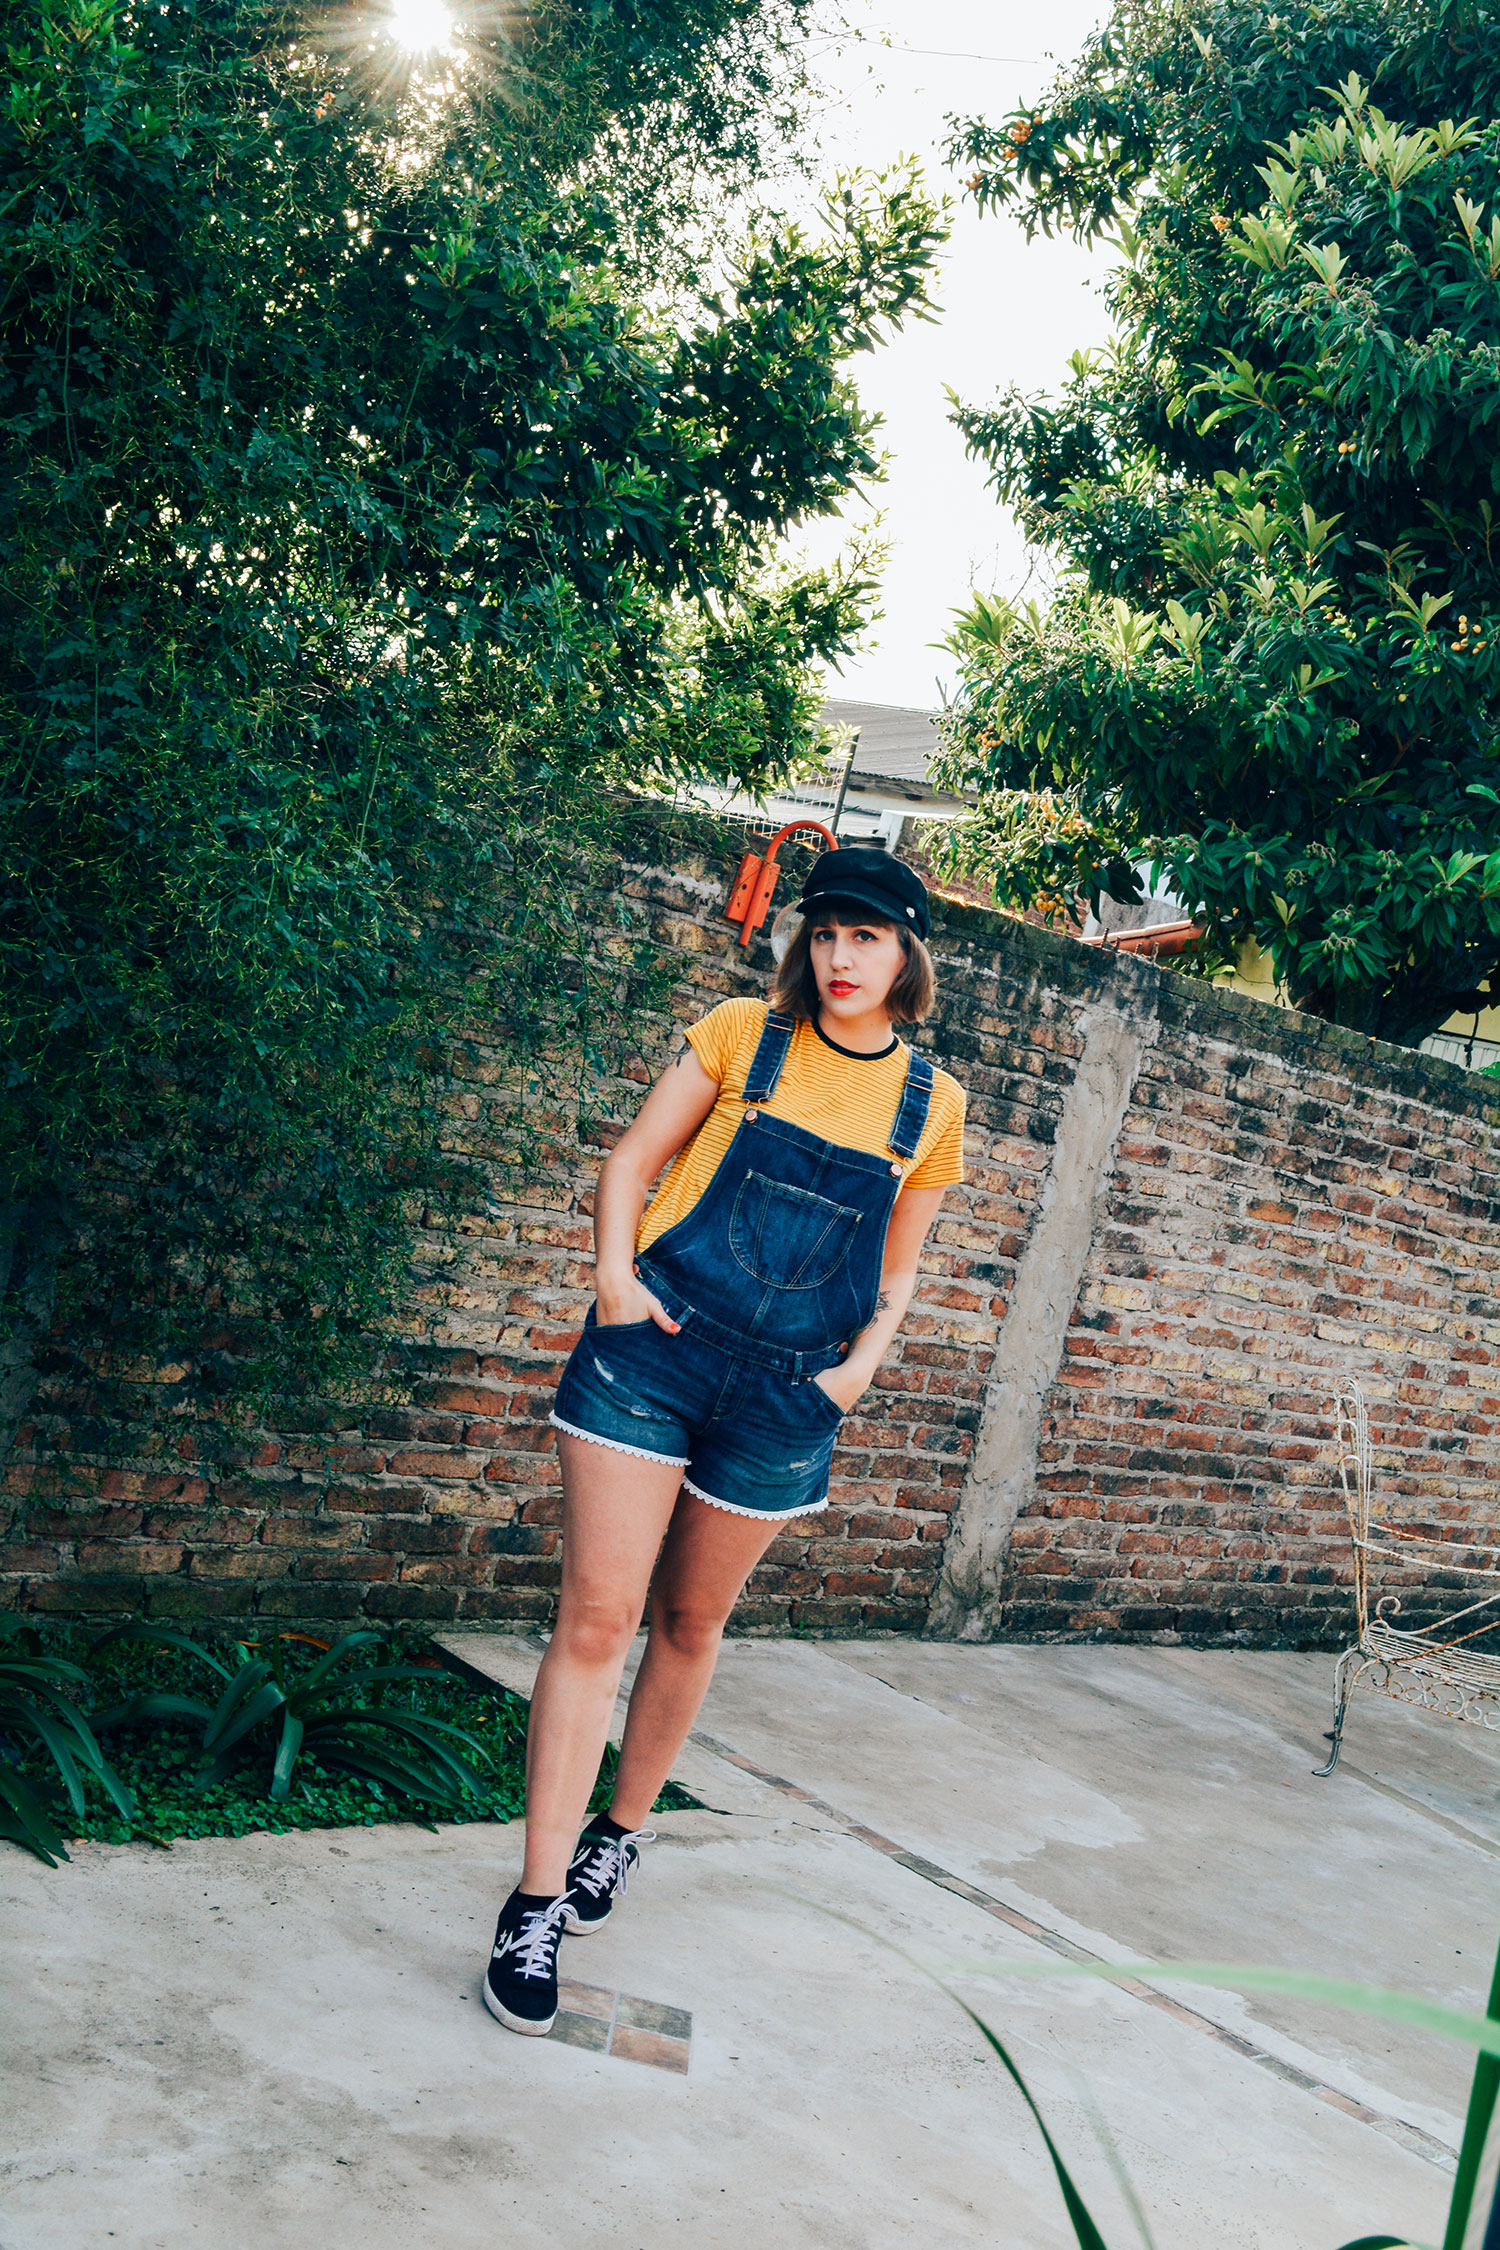 fashion, fashionista, moda, blogger argentina, fashion blogger, fashion blogger argentina, blogger, lifestyle blogger, thoughts, ootd, outfit, style, look, outfit of the day, lookbook, what i wore, style, spring style, ss style, summer style, blue lipstick, tattoo, tattooed girls, women tattoo, book tattoo, floral tattoo, stripes, denim, overalls